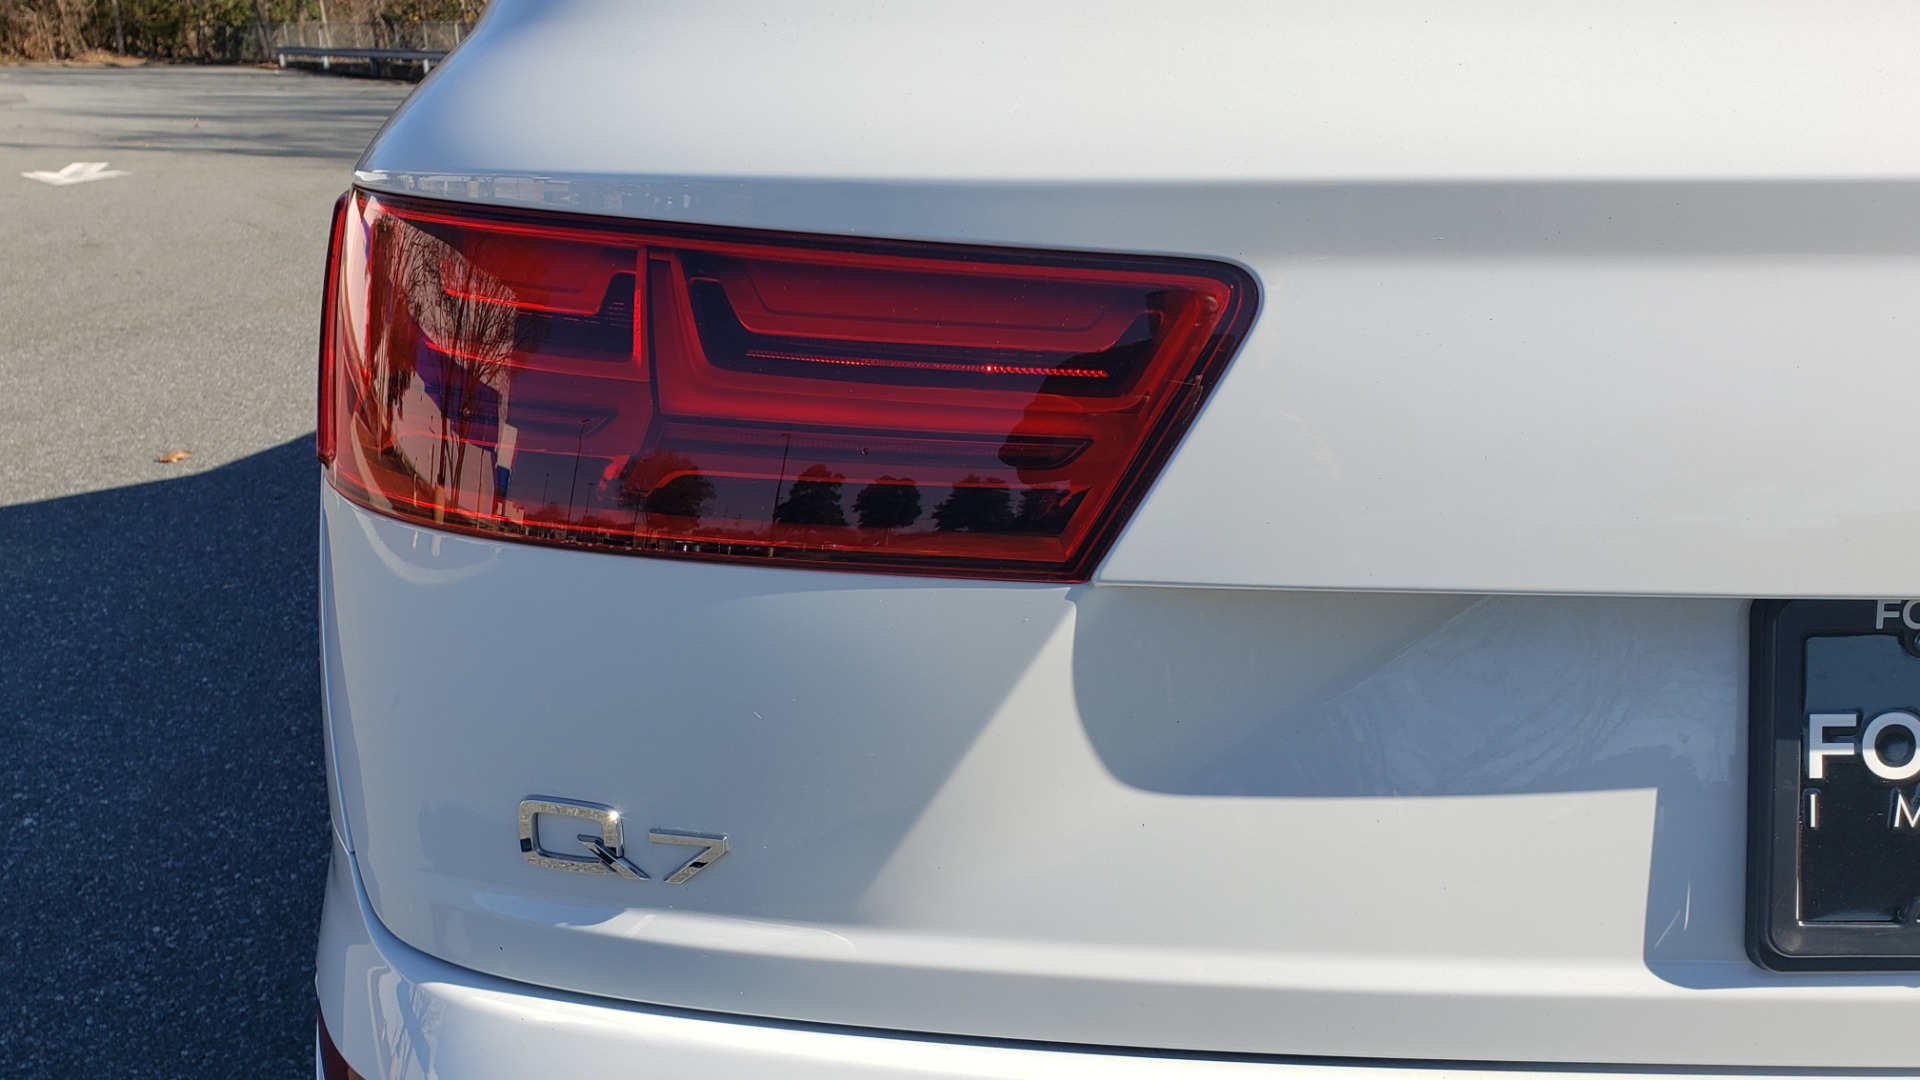 Used 2017 Audi Q7 PRESTIGE 3.0T / NAV / CLD WTHR / SUNROOF / REARVIEW for sale Sold at Formula Imports in Charlotte NC 28227 27